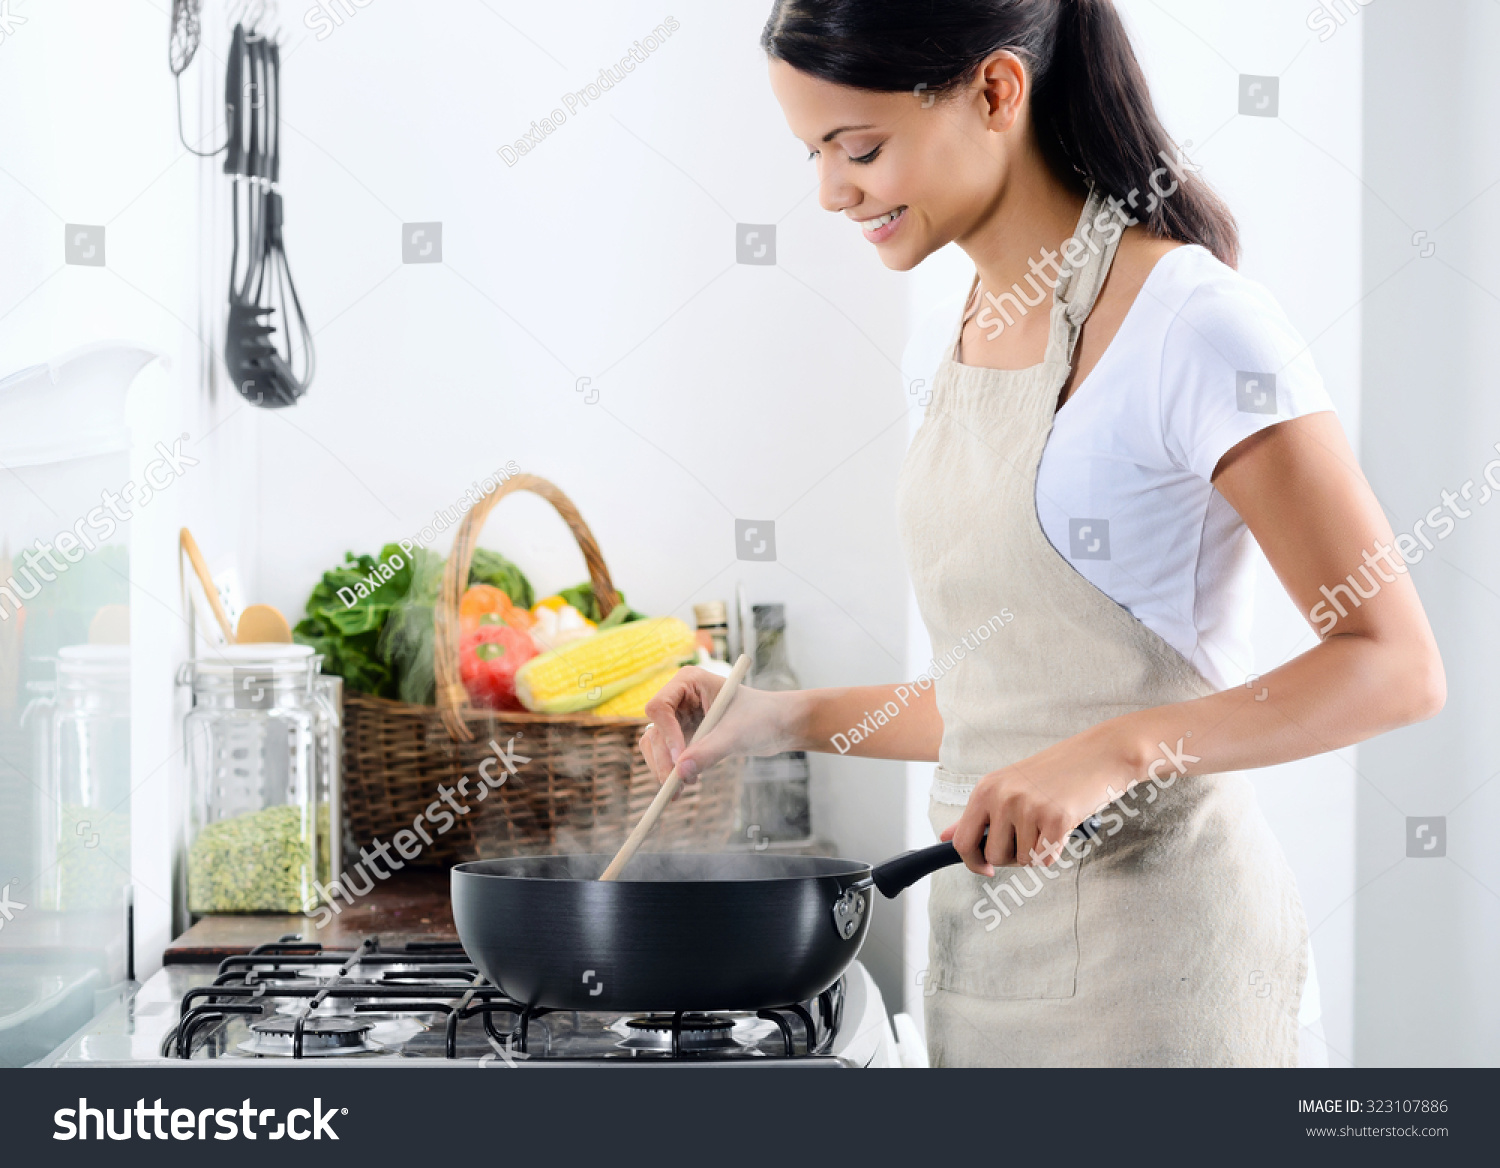 Cooker In Kitchen ~ Woman standing by stove kitchen cooking stock photo